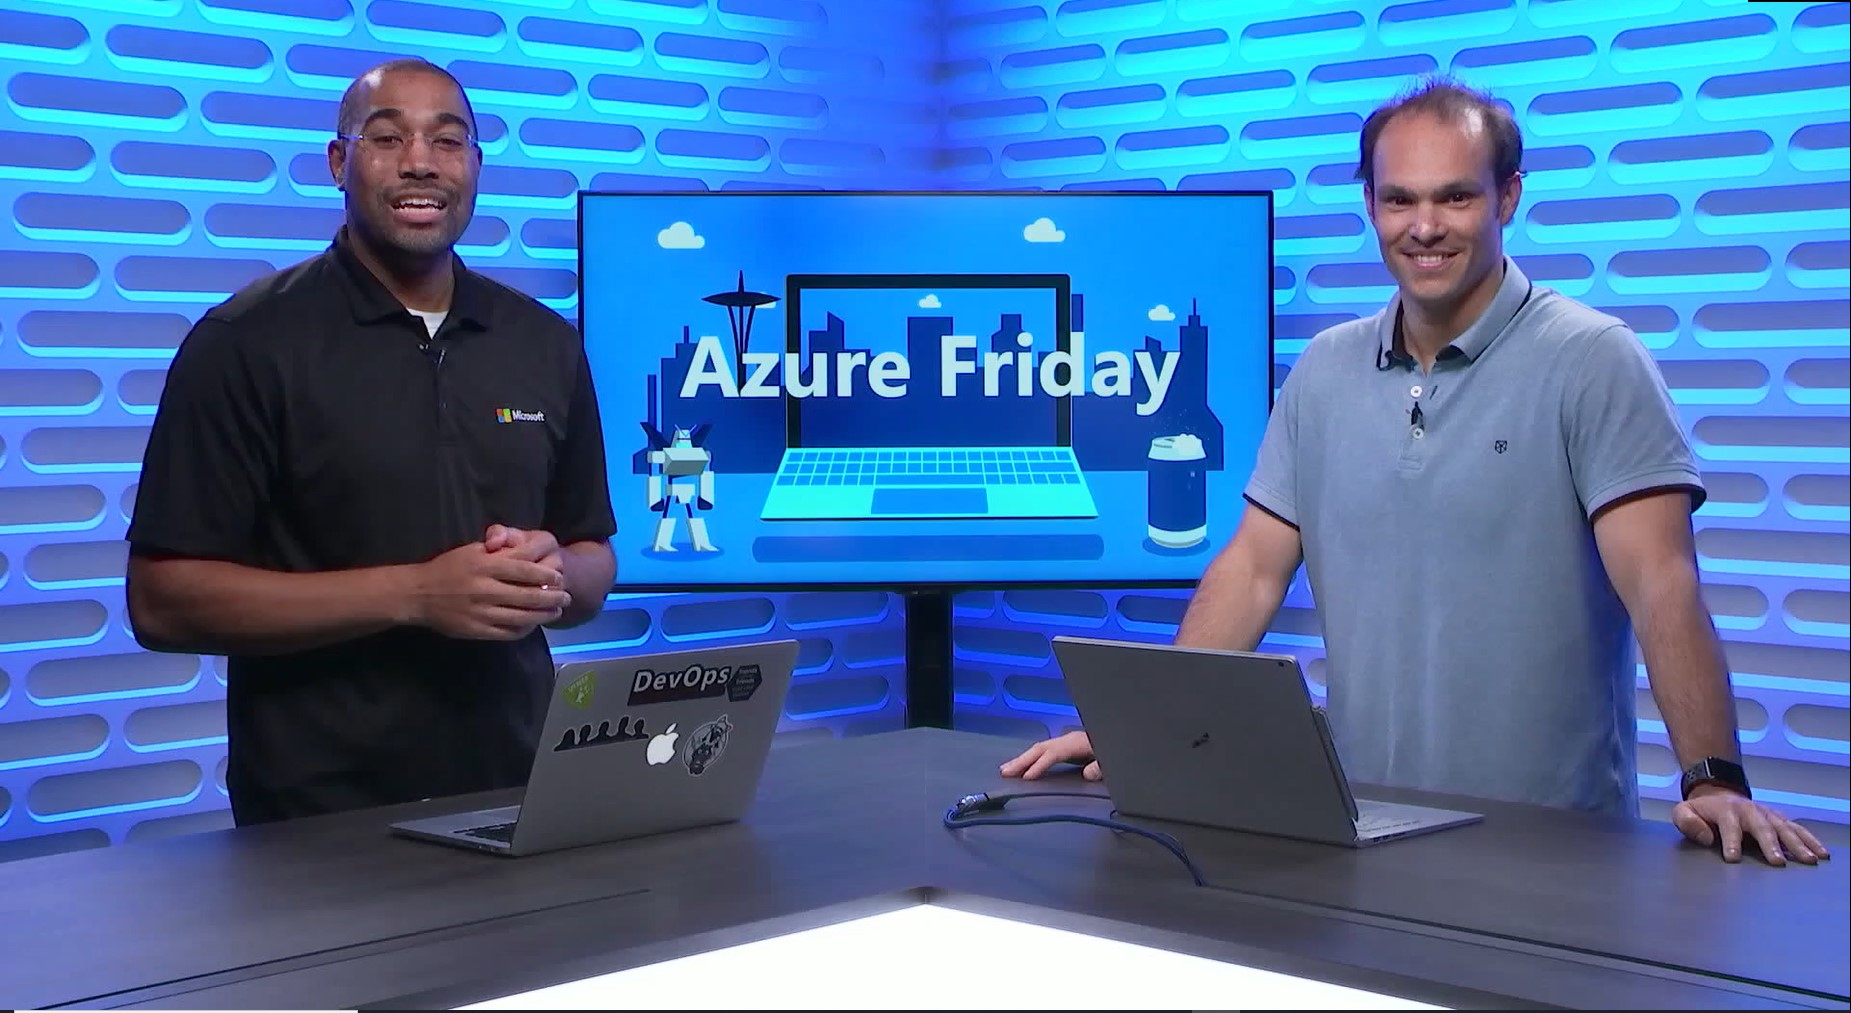 Azure Fridays - Policy update May 2019